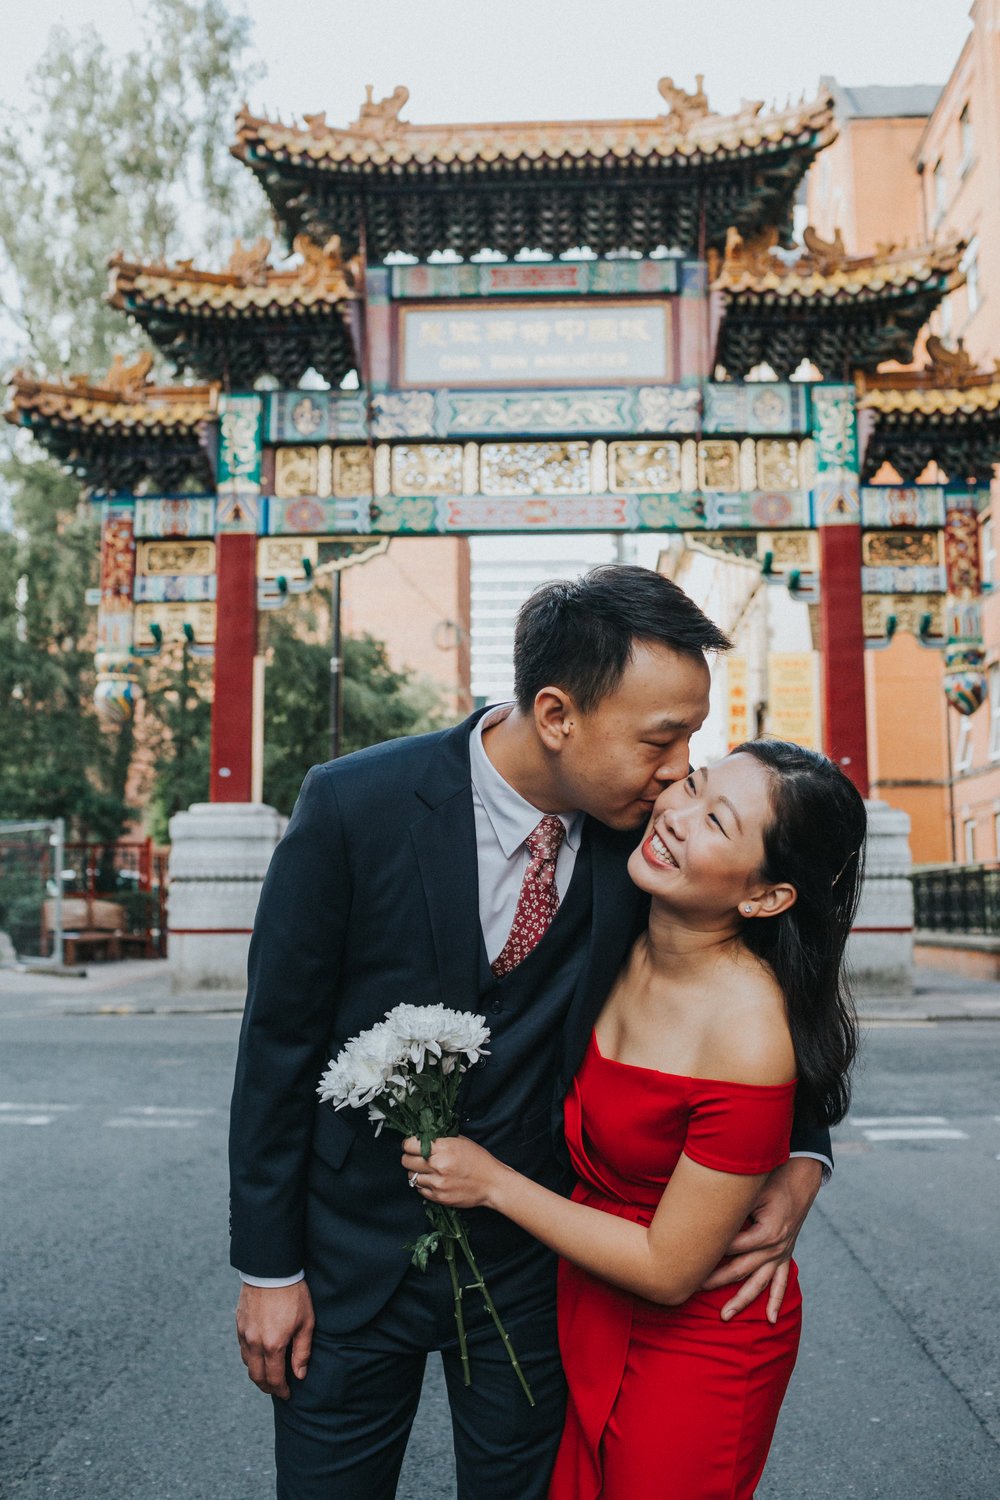 Groom gives his bride a kiss and she beams with delight under China Town Arch.